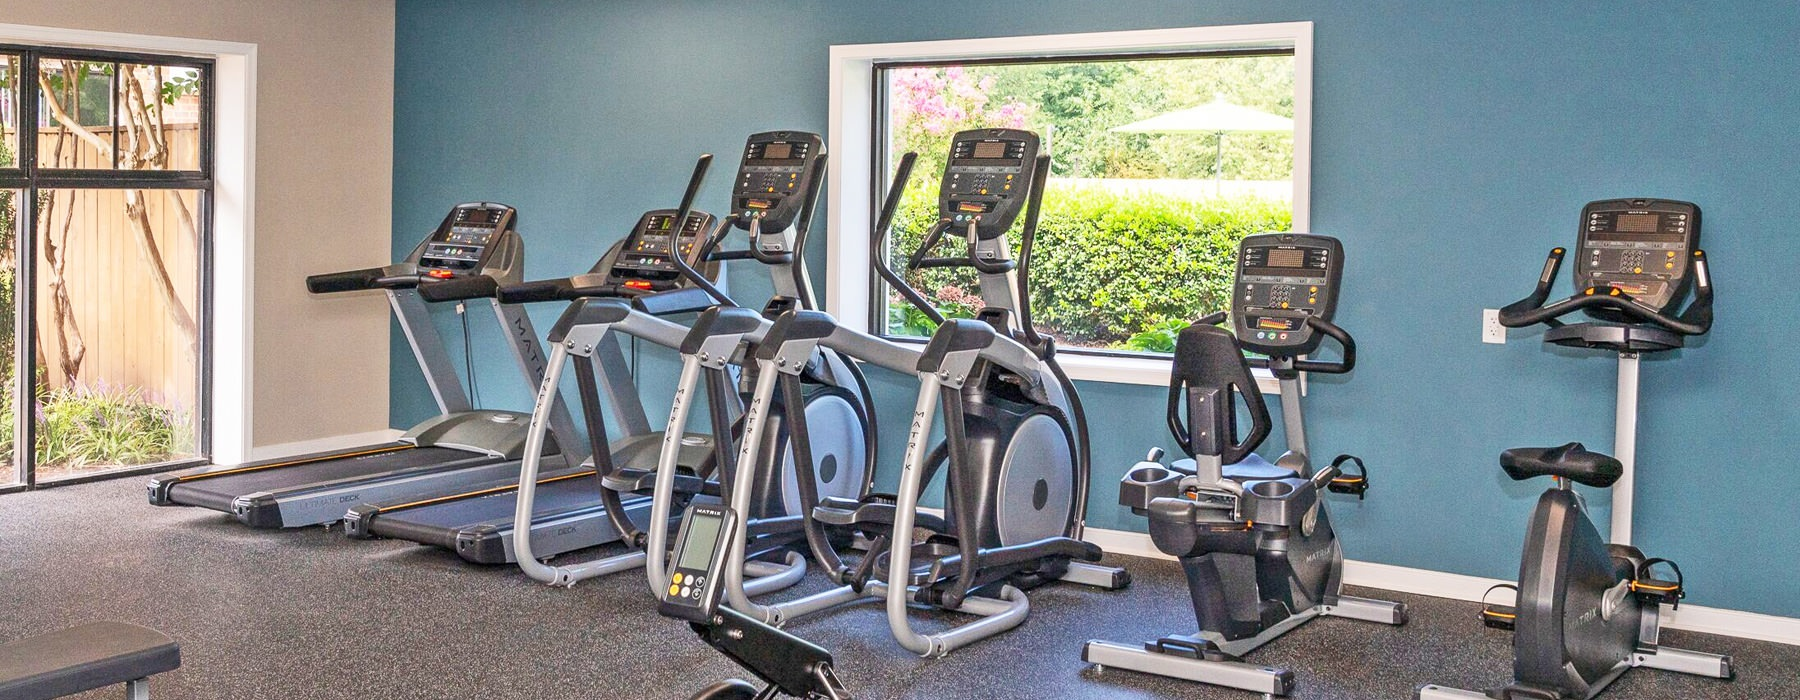 Fitness Center features two large windows